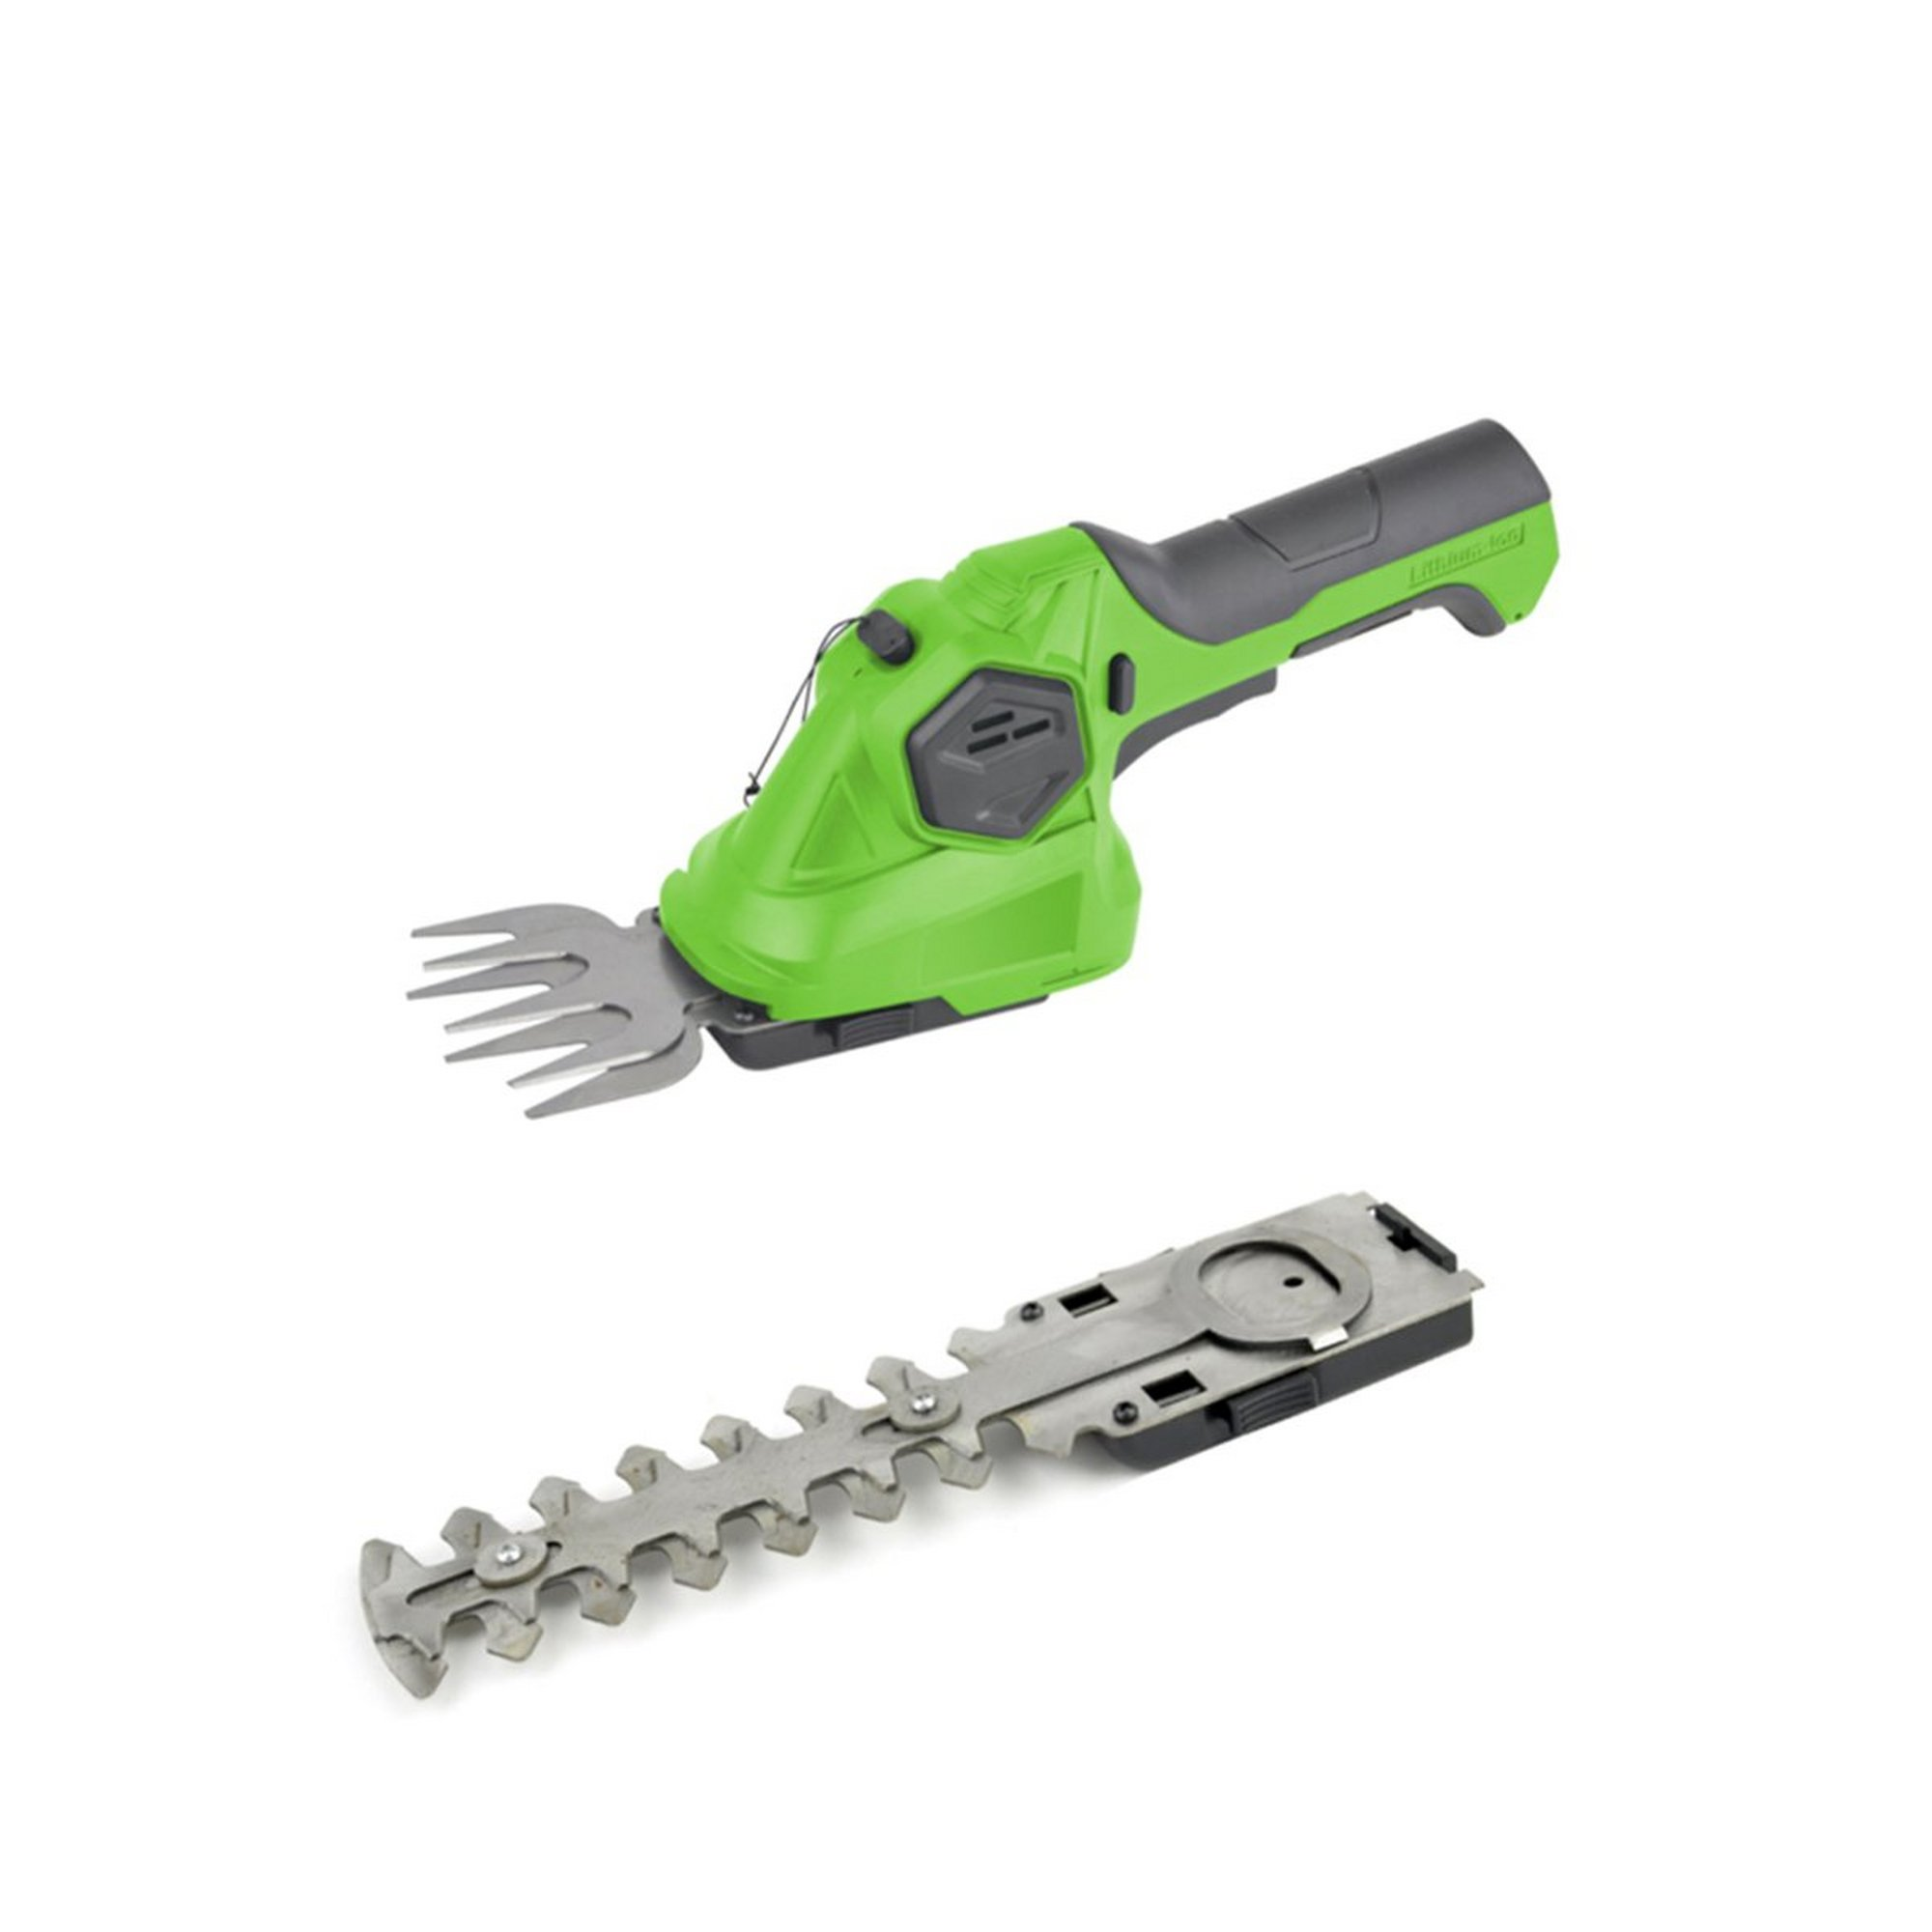 Image of Charles Bentley Cordless 2-in-1 Grass Cutter And Hedge Trimmer